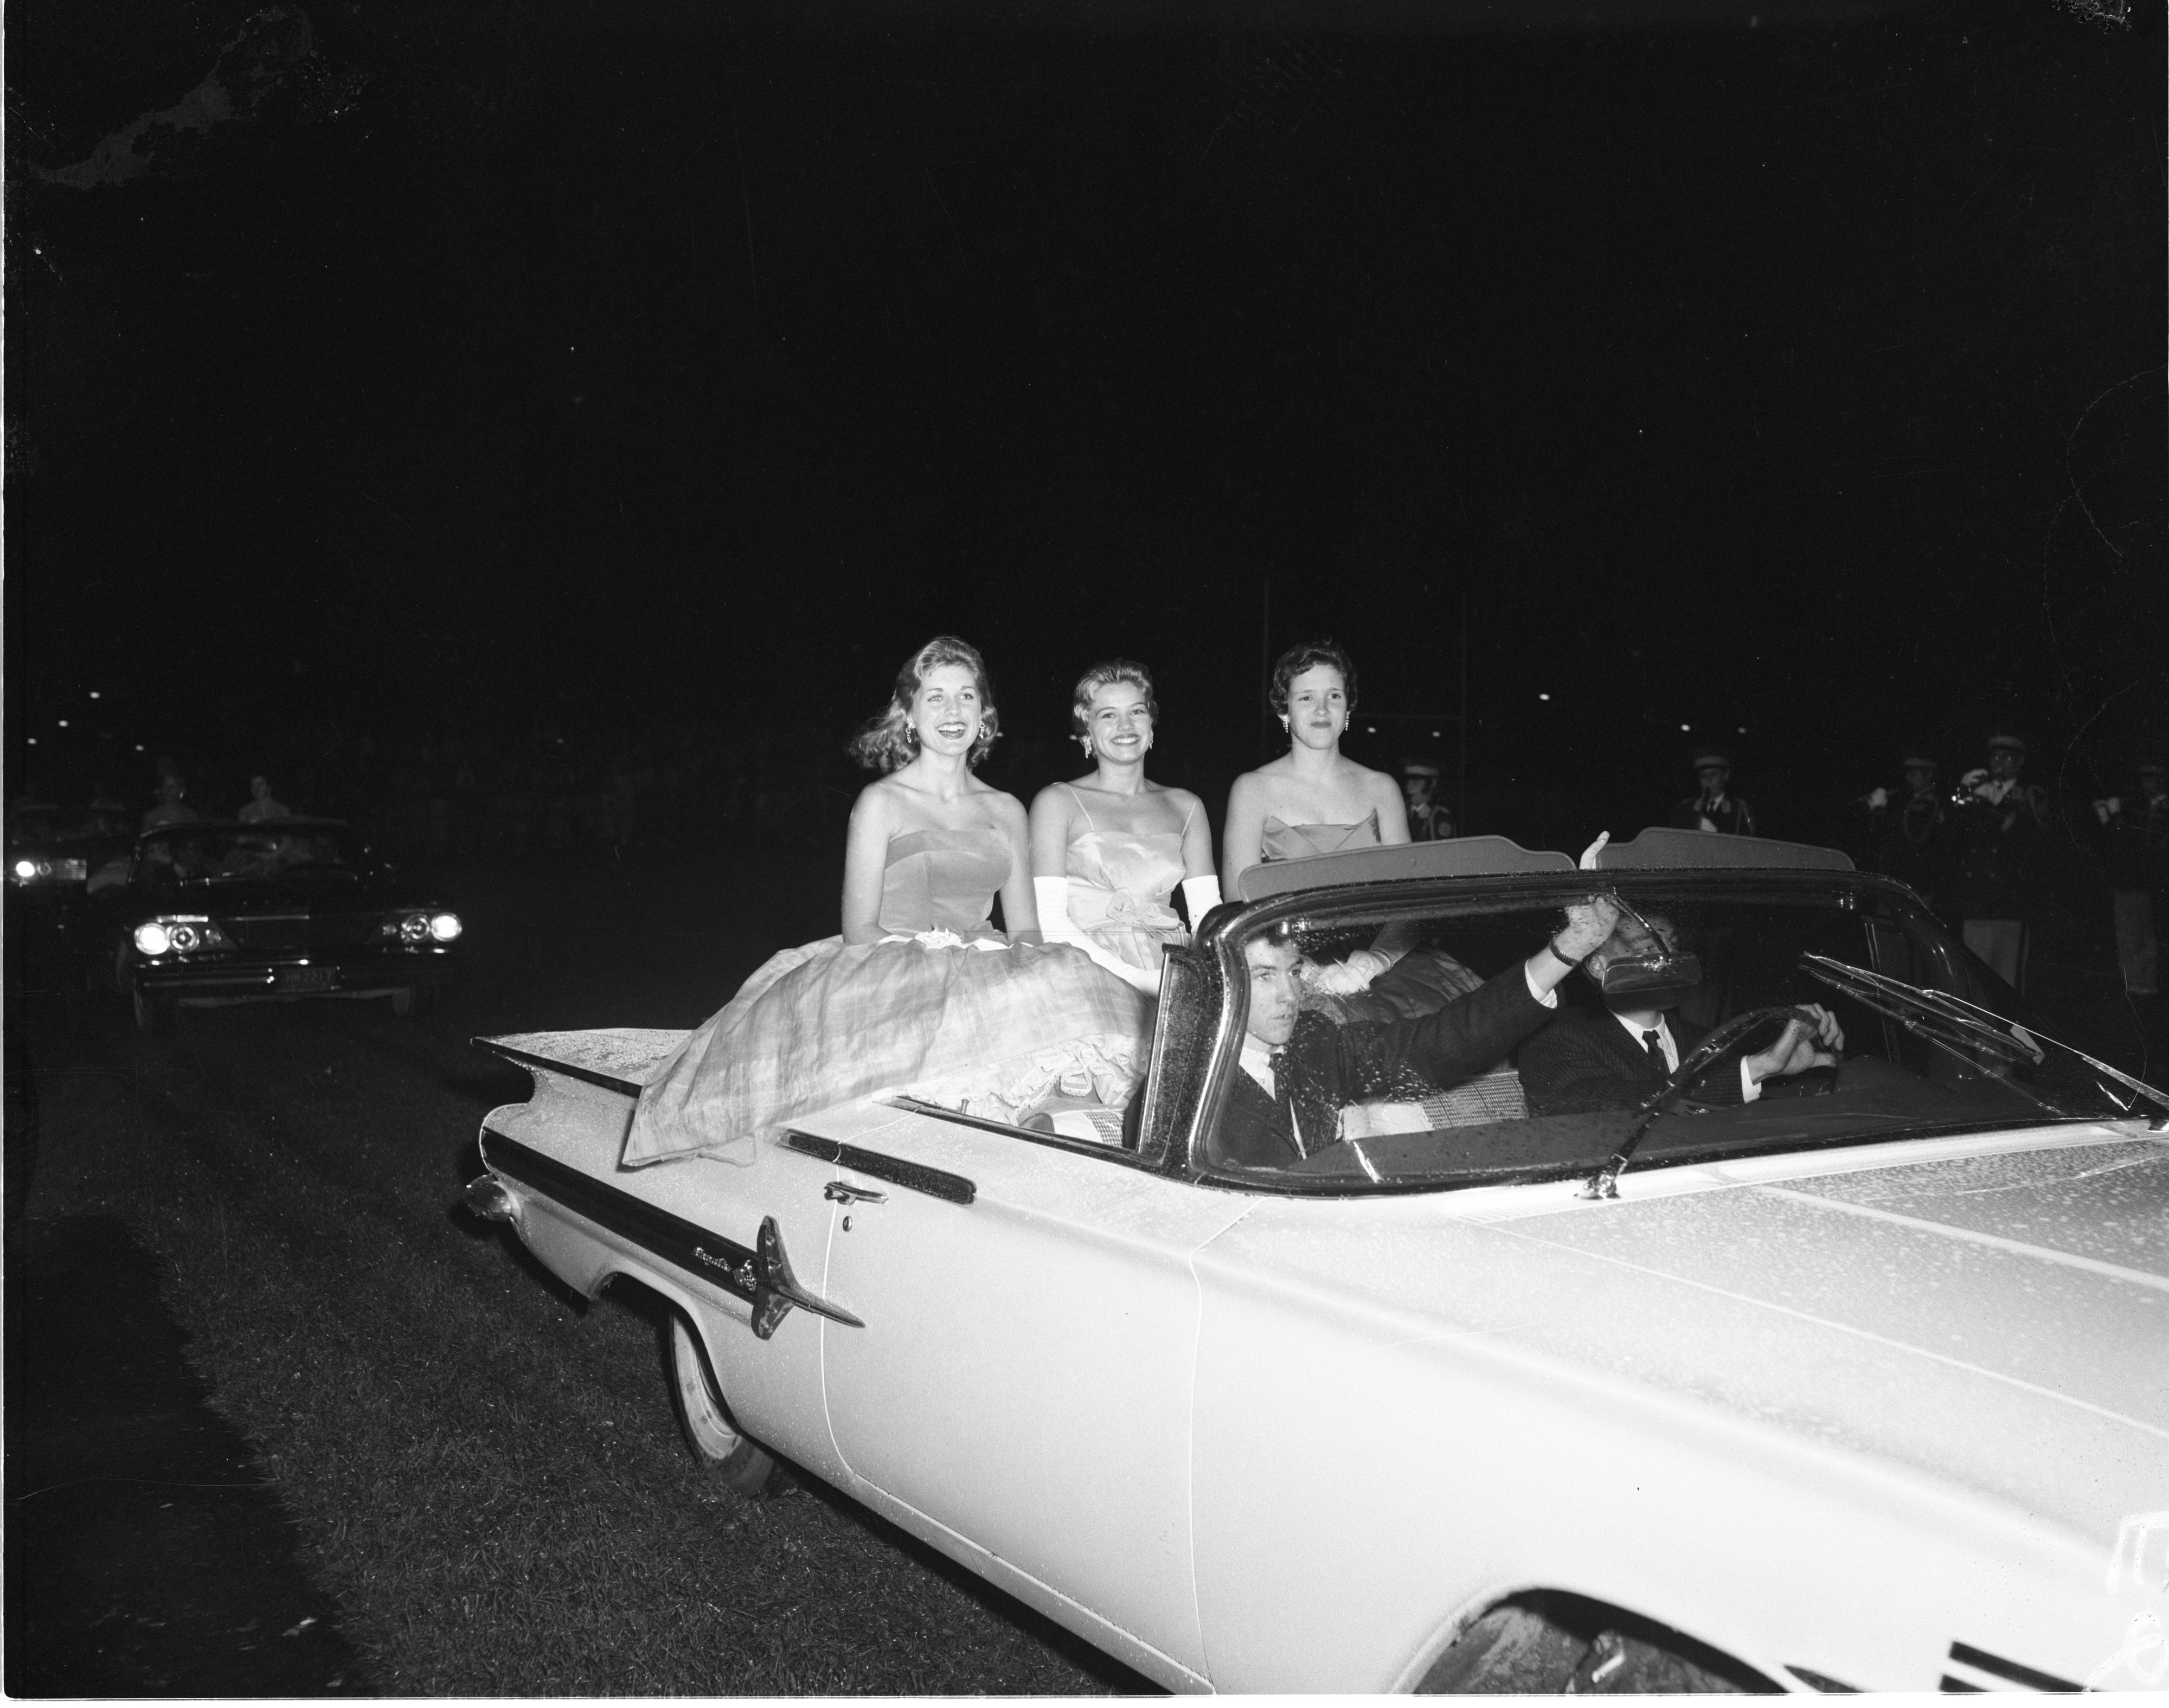 Mary Palmer, Ann Arbor High School's Homecoming Queen, Rides With Senior Court Members Peg Twining & Carol Porter, October 1959 image